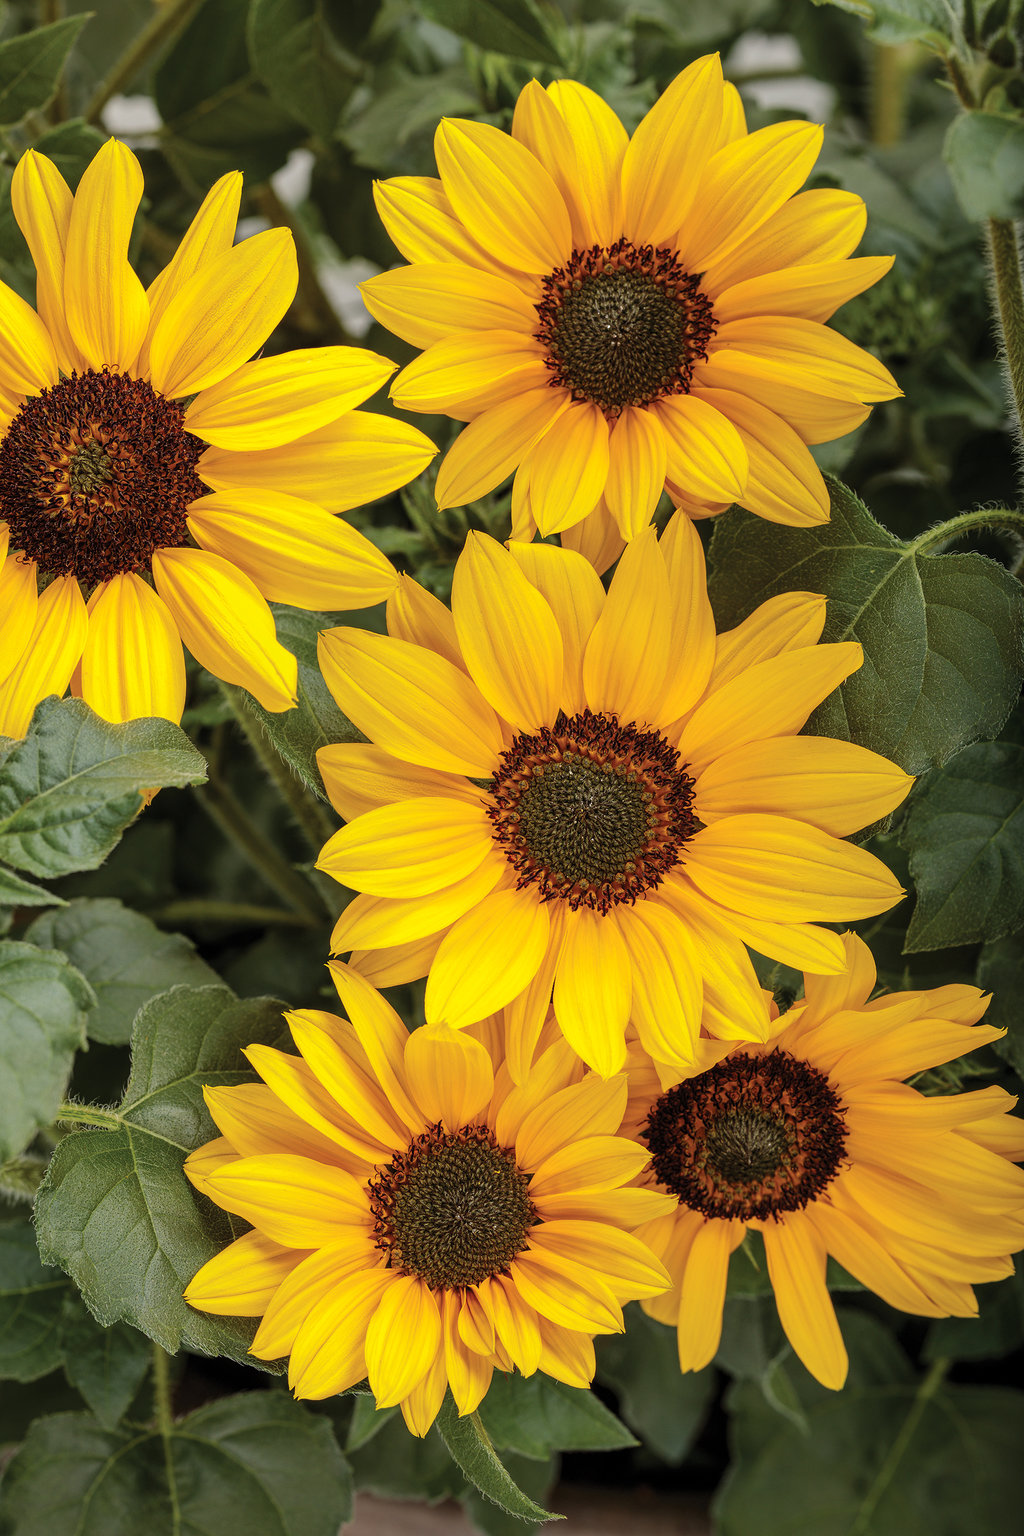 Suncredible 174 Yellow Sunflower Helianthus Hybrid